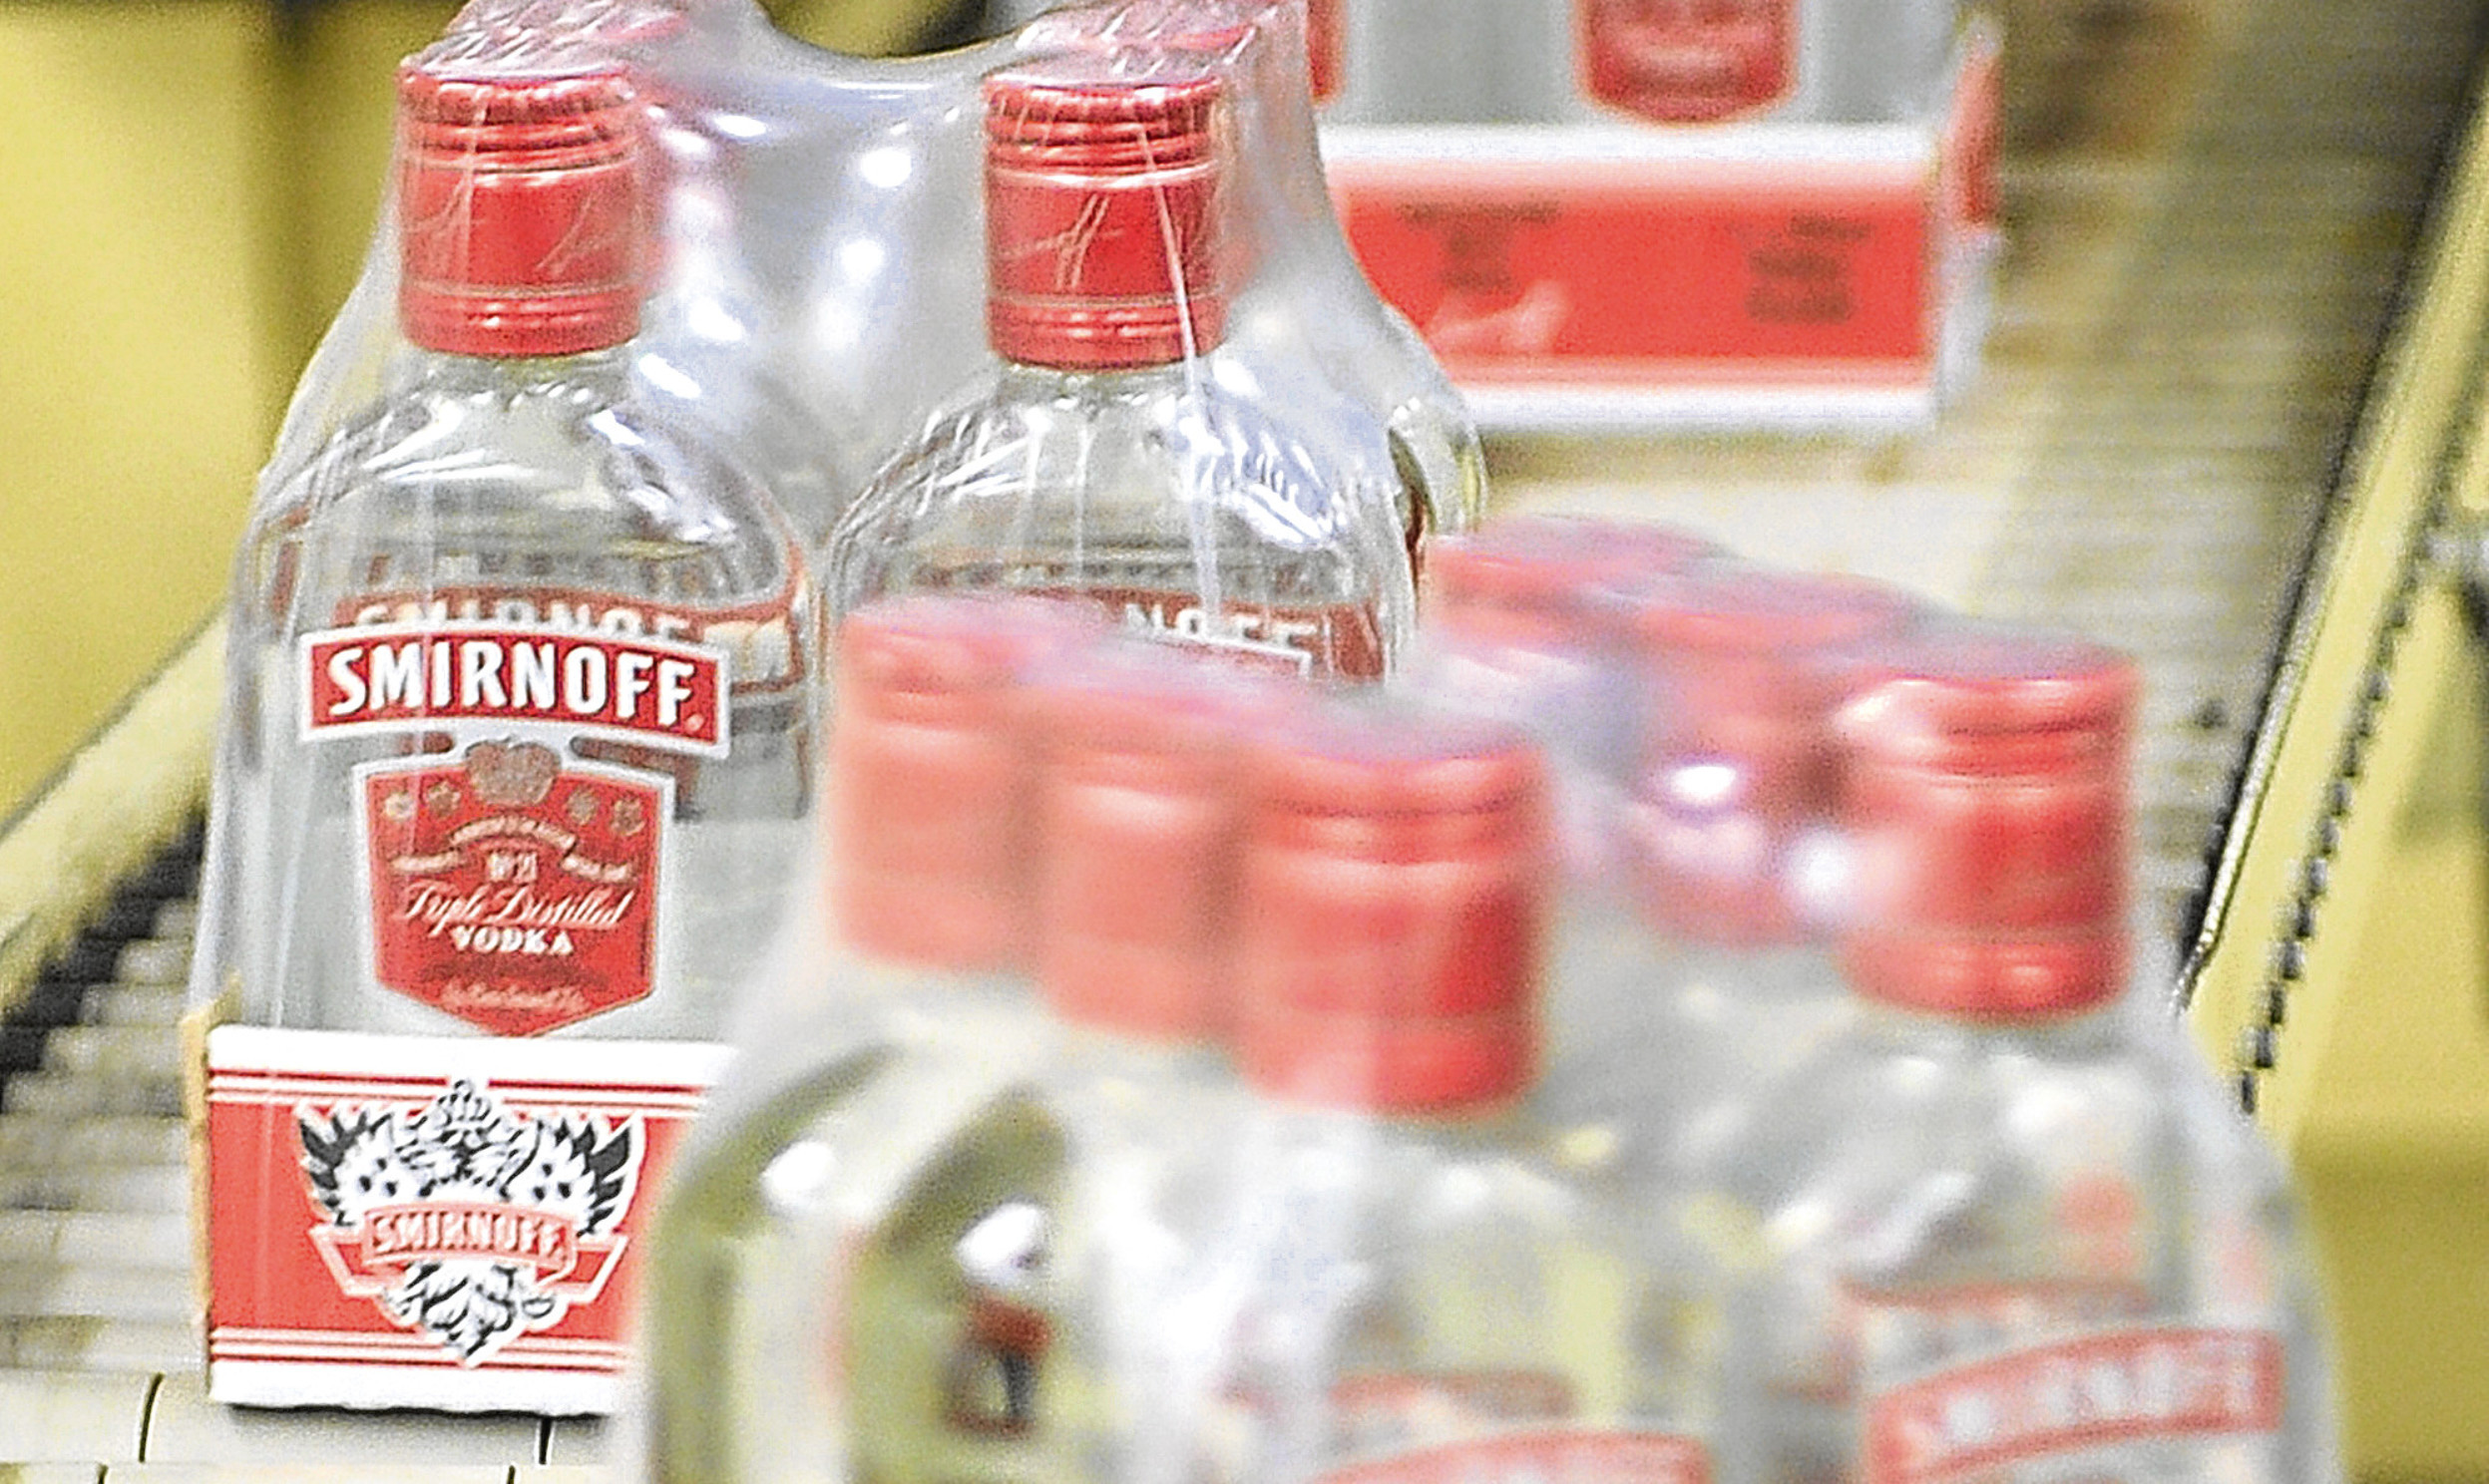 Diageos bottling plant in Leven can produce up to 500 bottles a minute